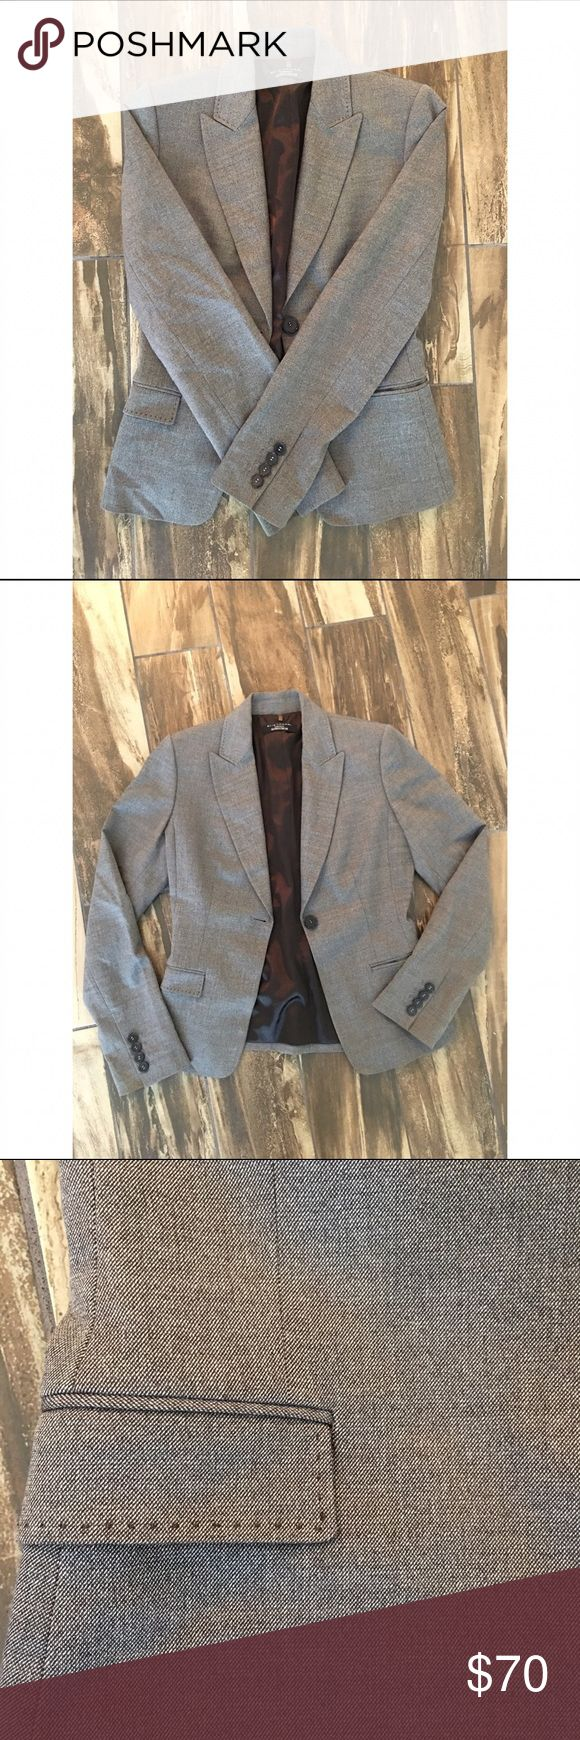 Elie TAHARI Sz 2 Blazer, Great Condition Size 2 perfectly tailored (unaltered) Elie Tahari Women's blazer. Perfect with black skinny pants or with a cute pair of skinny jeans for a casual business meeting. Sport Coat is in excellent condition with no signs of wear. Features brown silky lining and great detail on pockets and button seaming. Elie Tahari Jackets & Coats Blazers